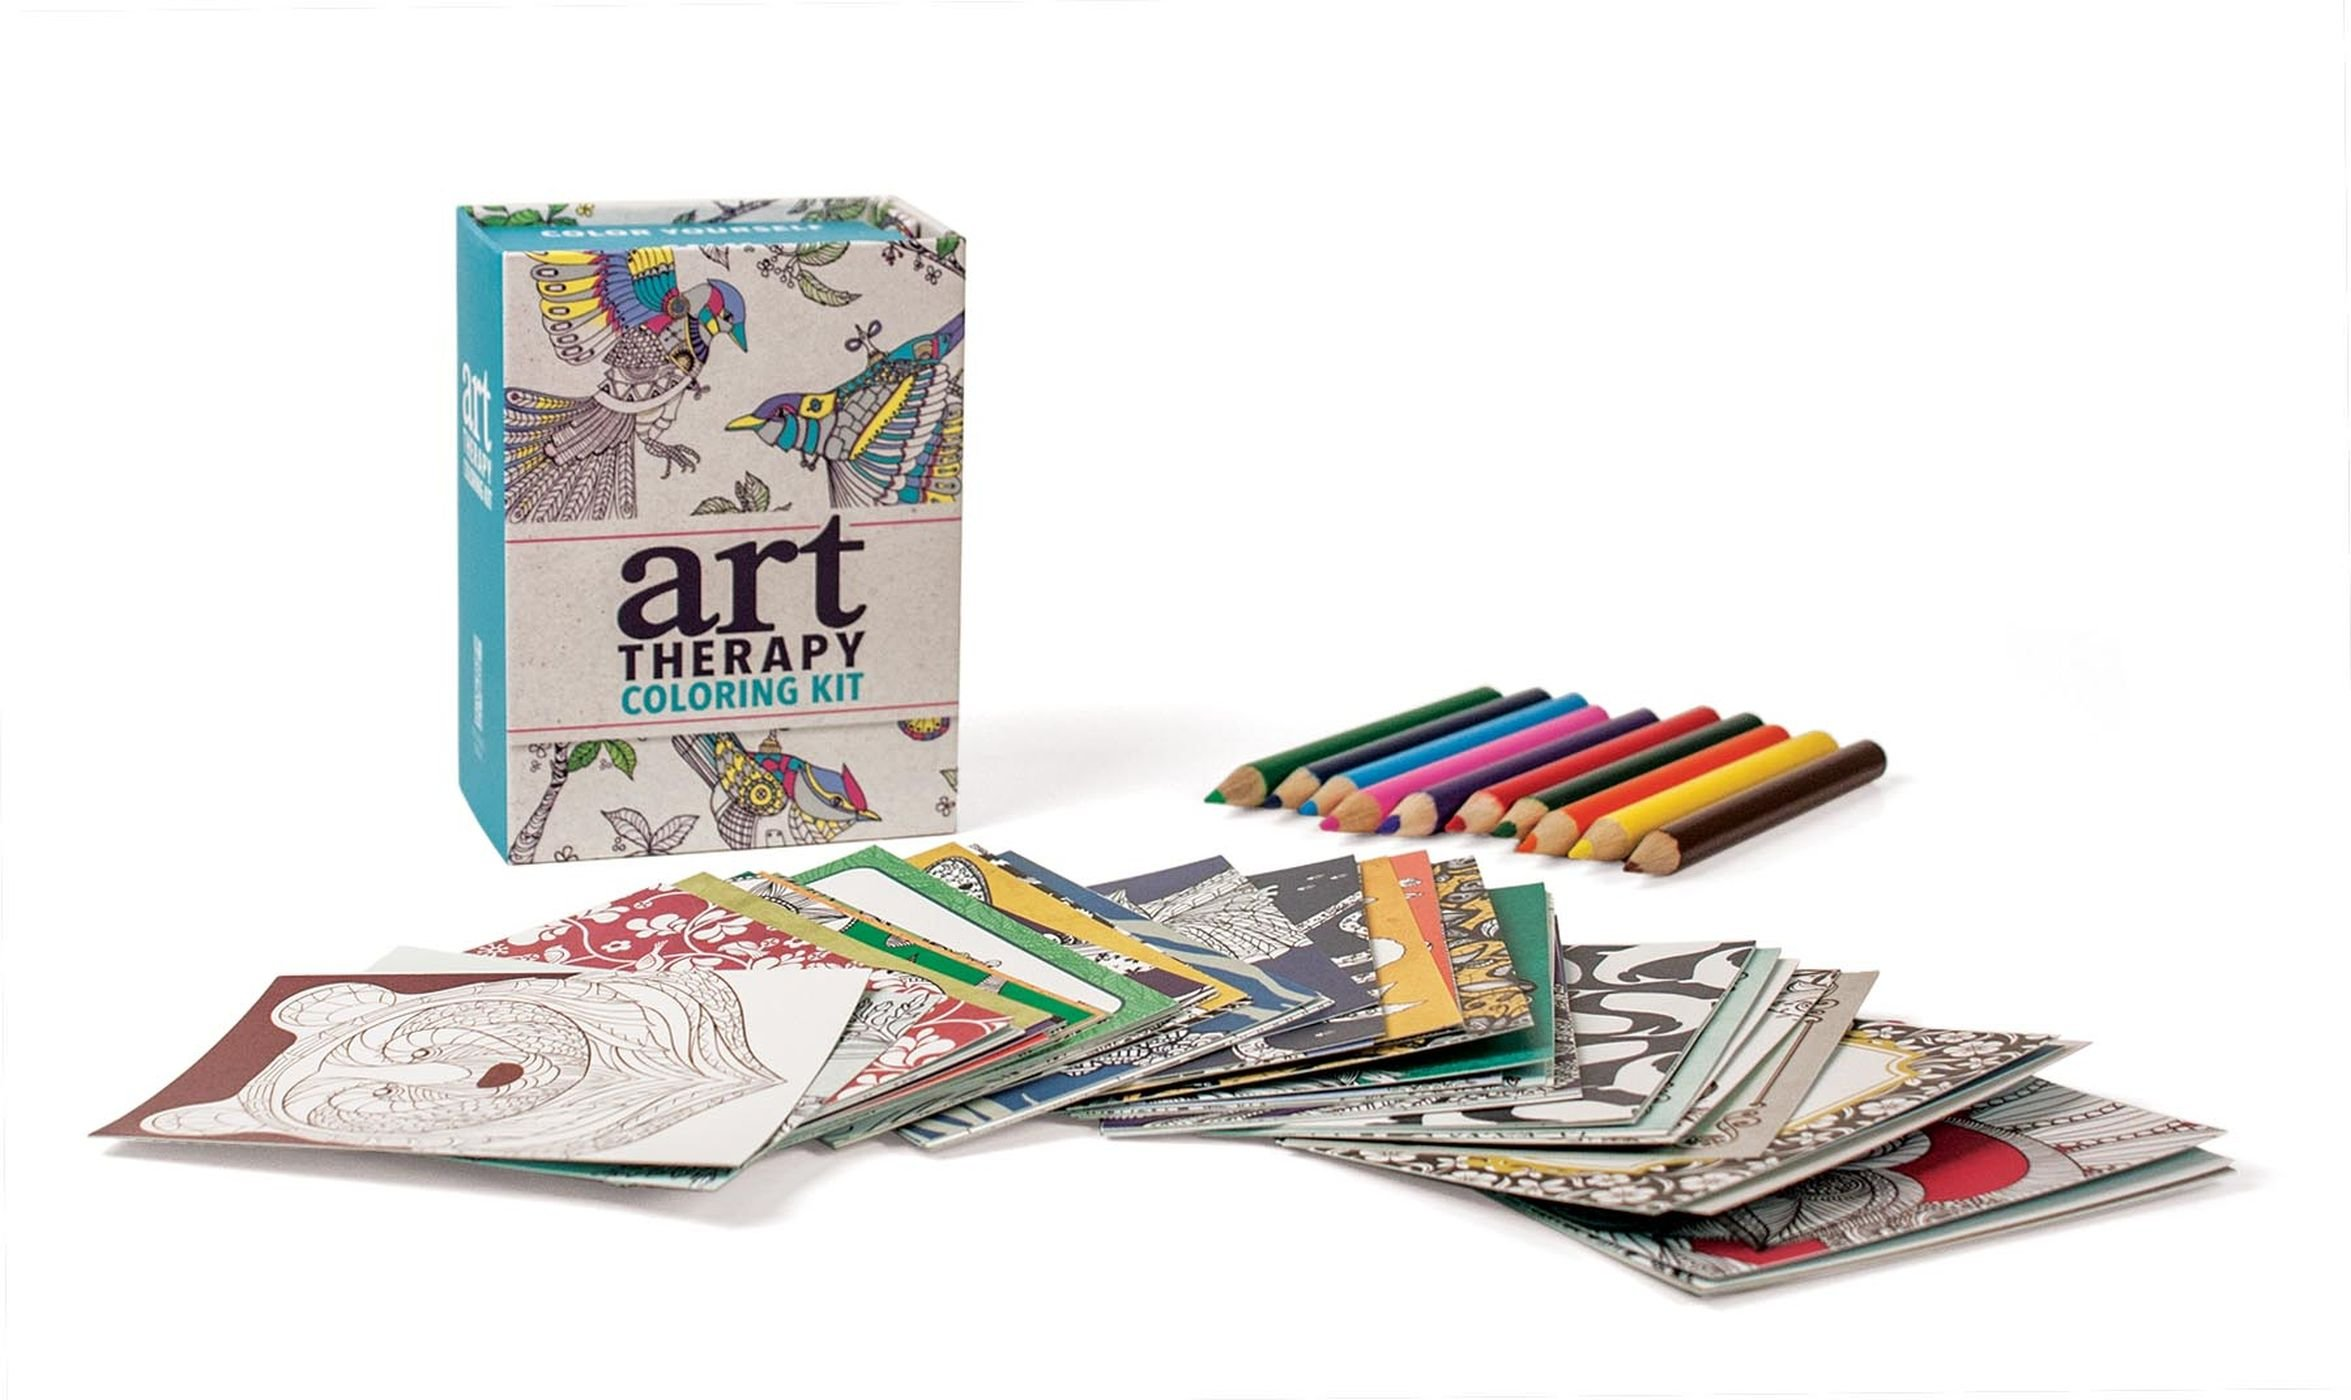 Art Therapy Coloring Kit Miniature Editions Sam Loman 9780762460564 Amazon Books